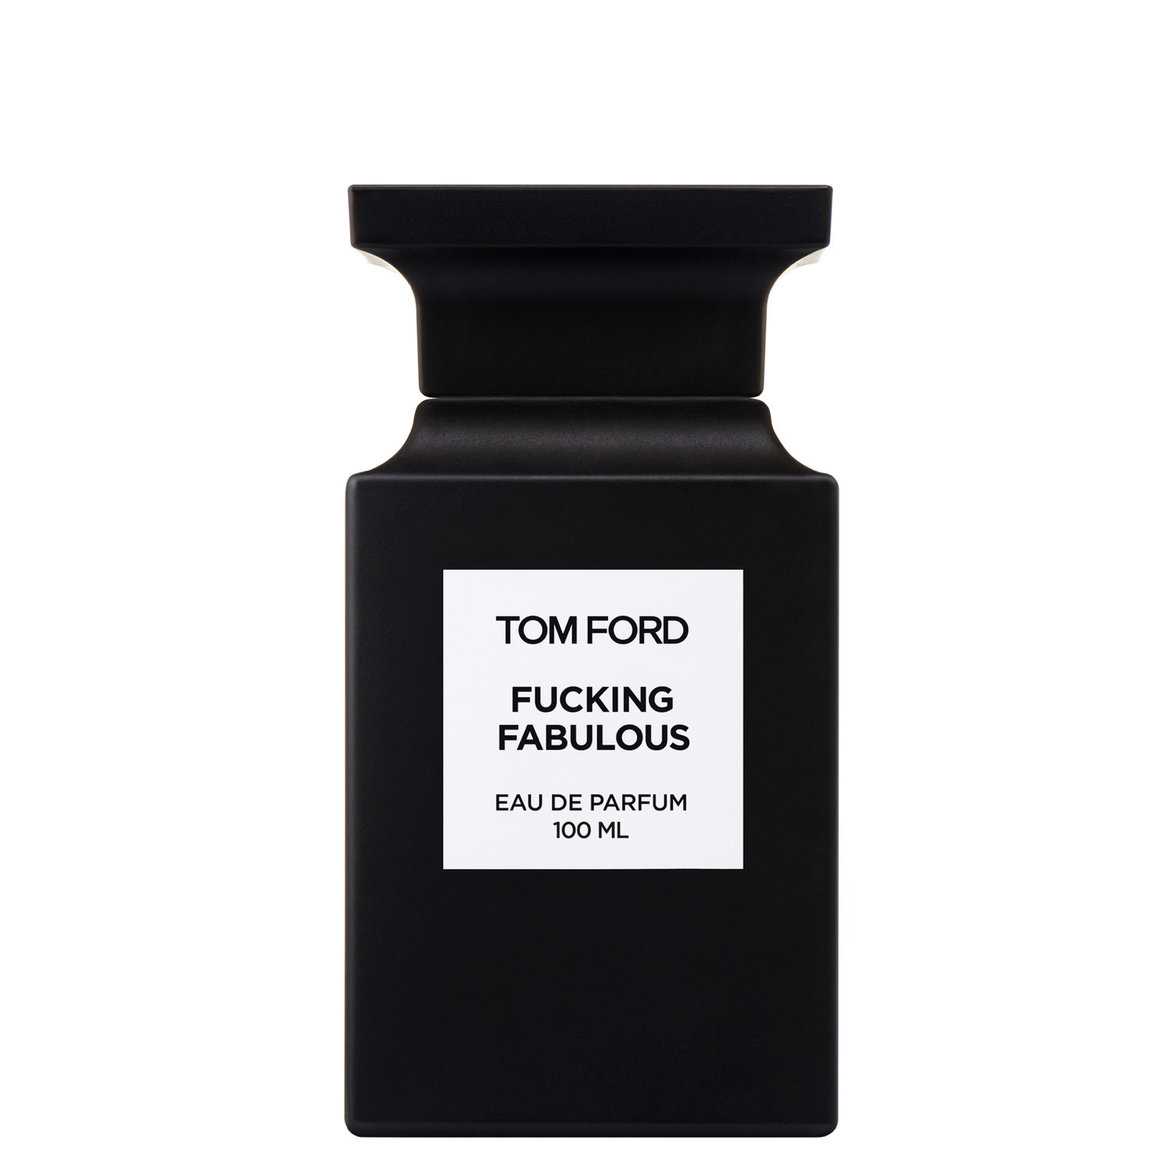 TOM FORD Fucking Fabulous 100 ml product swatch.